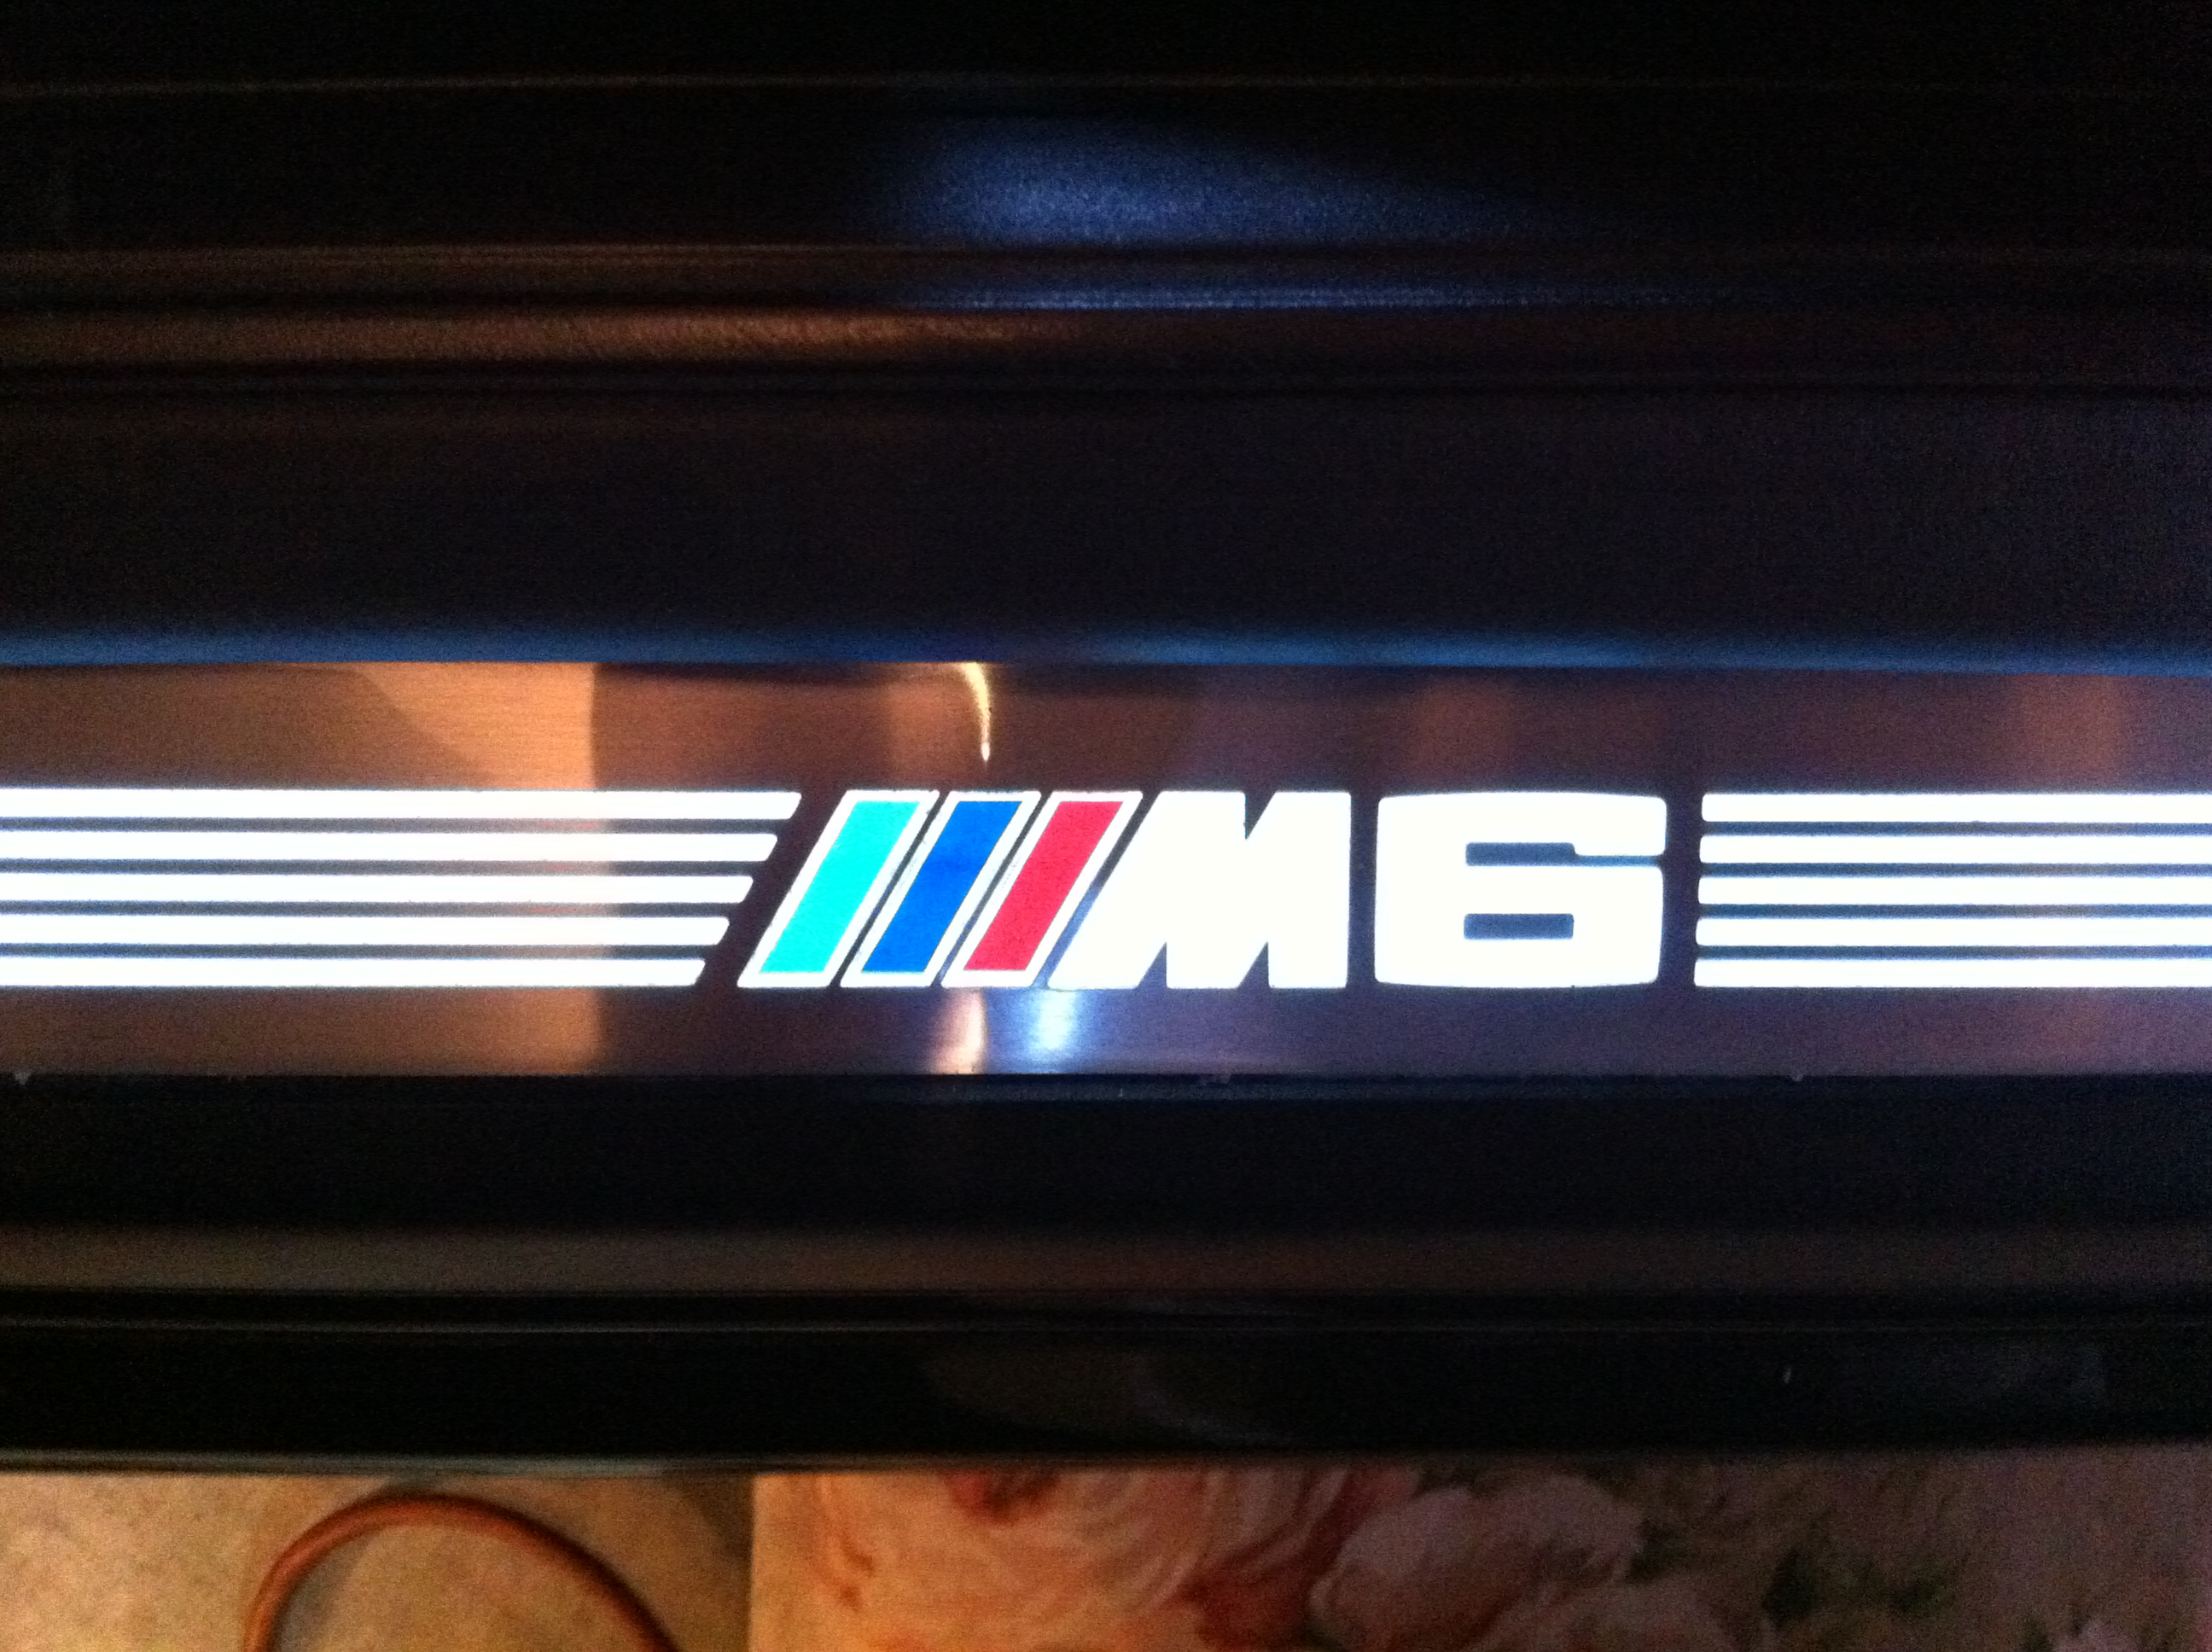 DYI Illuminated Door Sill Mod  BMW M5 Forum and M6 Forums